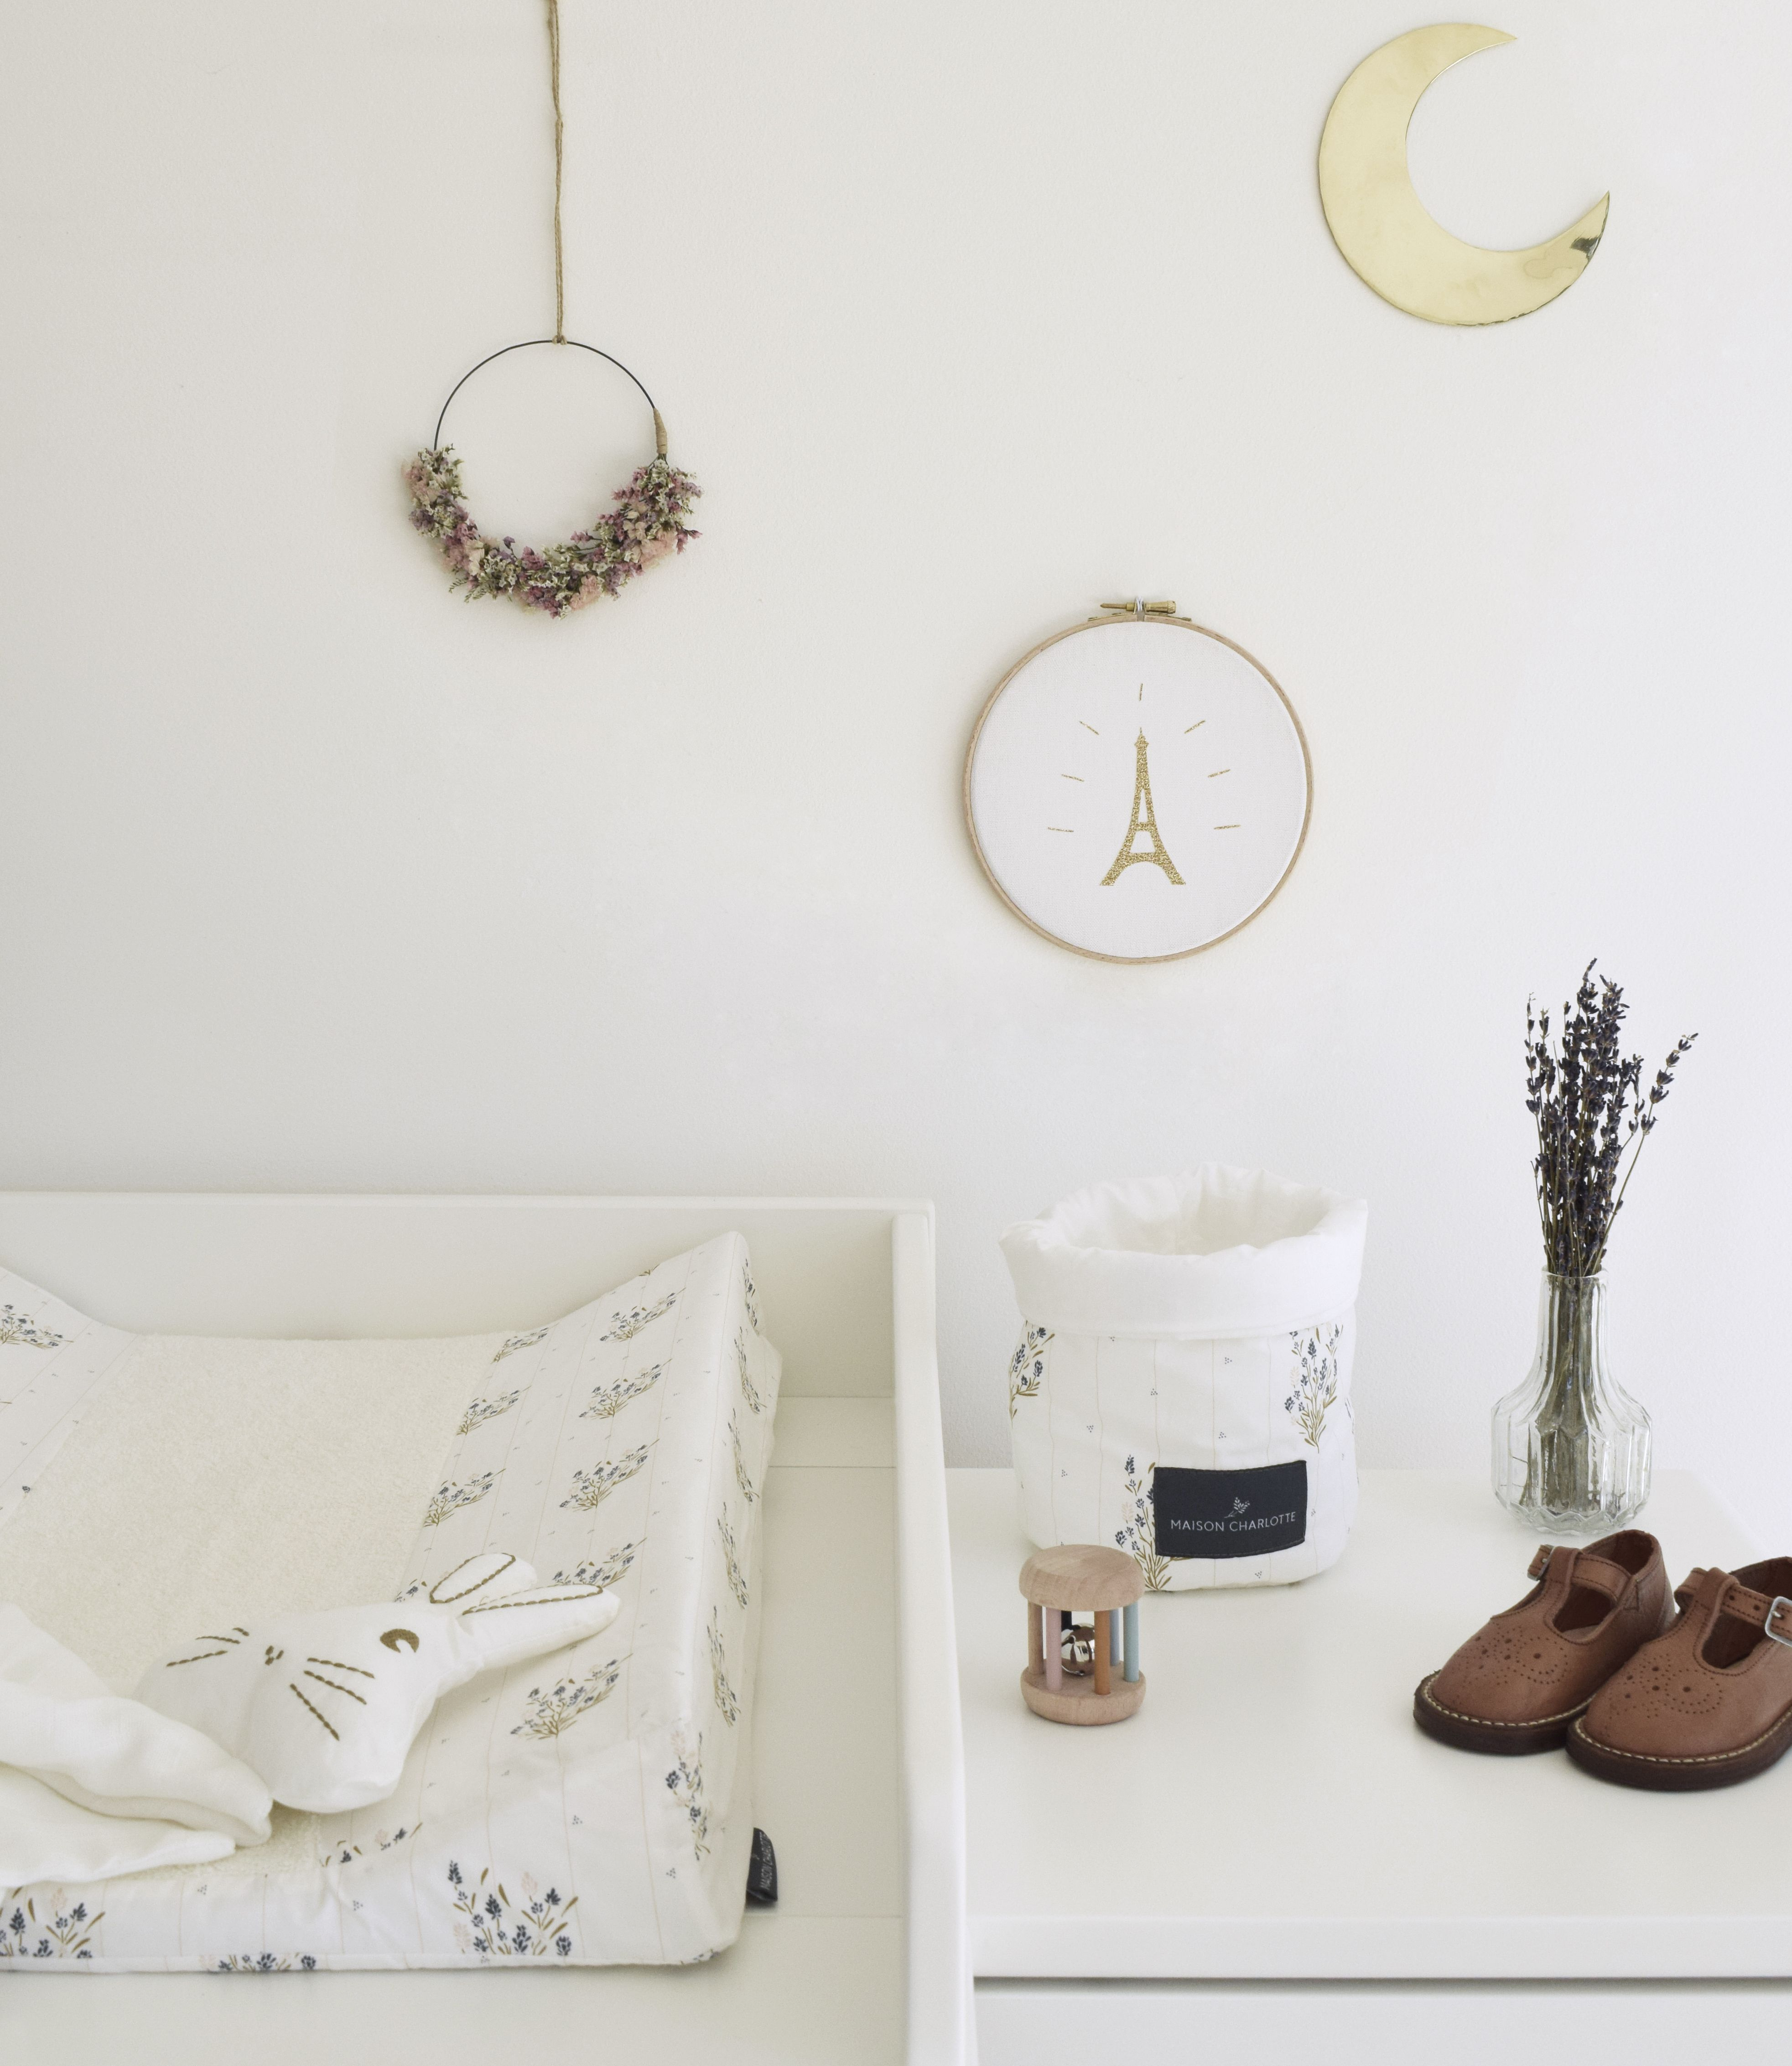 A nice atmosphere for your baby's room by Maison Charlotte. Designed in France and made in Portugal. #babyroom #babybed #kidsroom #nursery #nurserydecor #vintagestyle #homedecor #maisondefamille #ideedeco #decochambreenfant #chambrebebe #inspiration #organiccotton